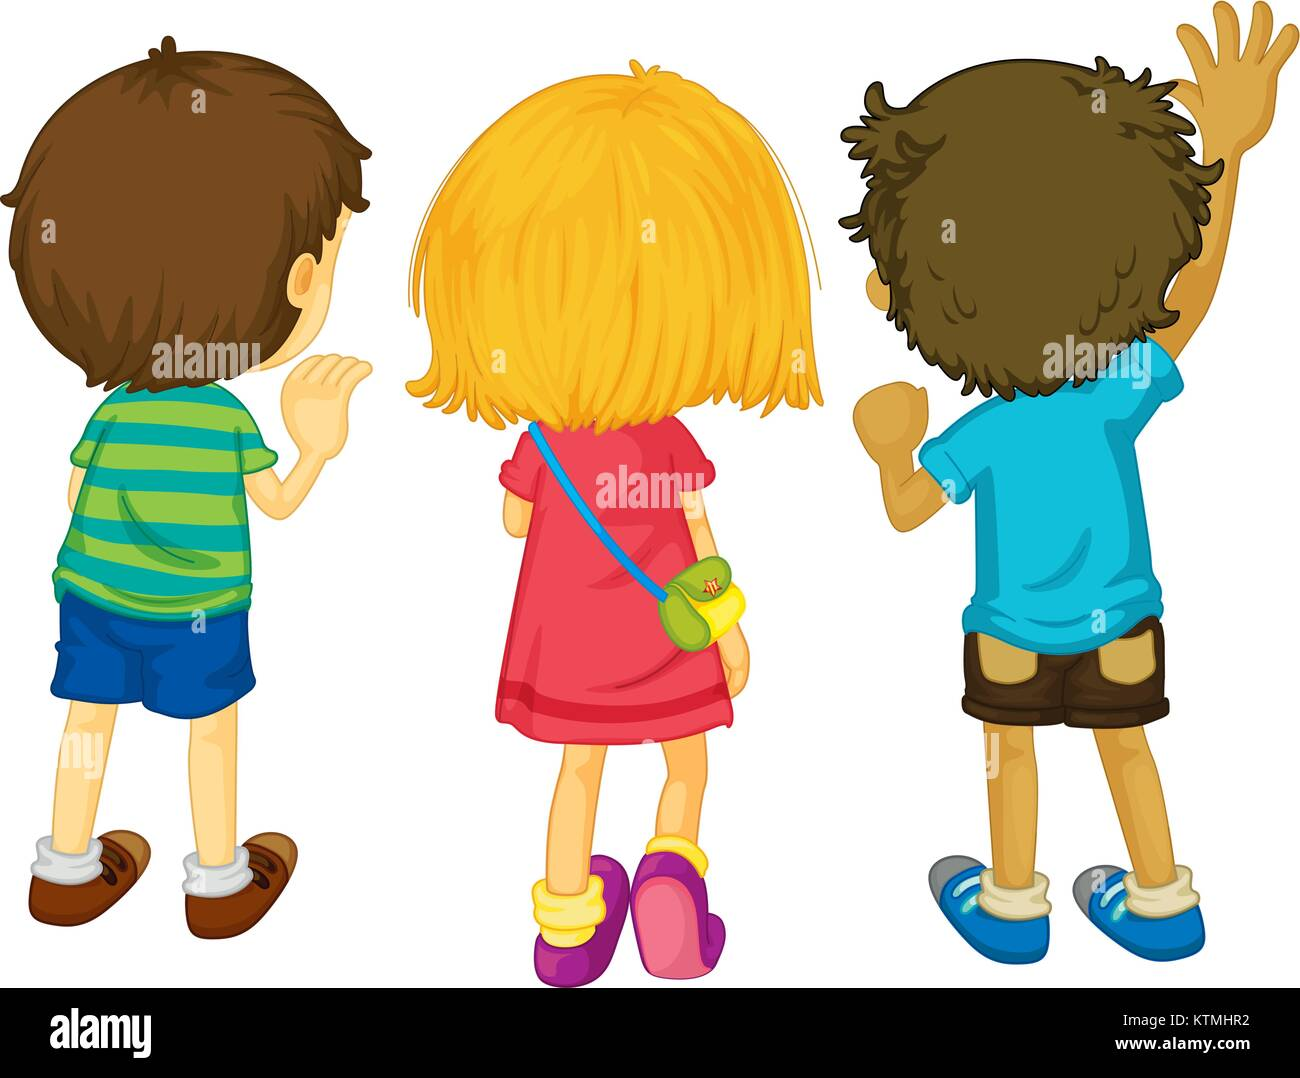 Illustration of 3 kids with backs facing - Stock Vector